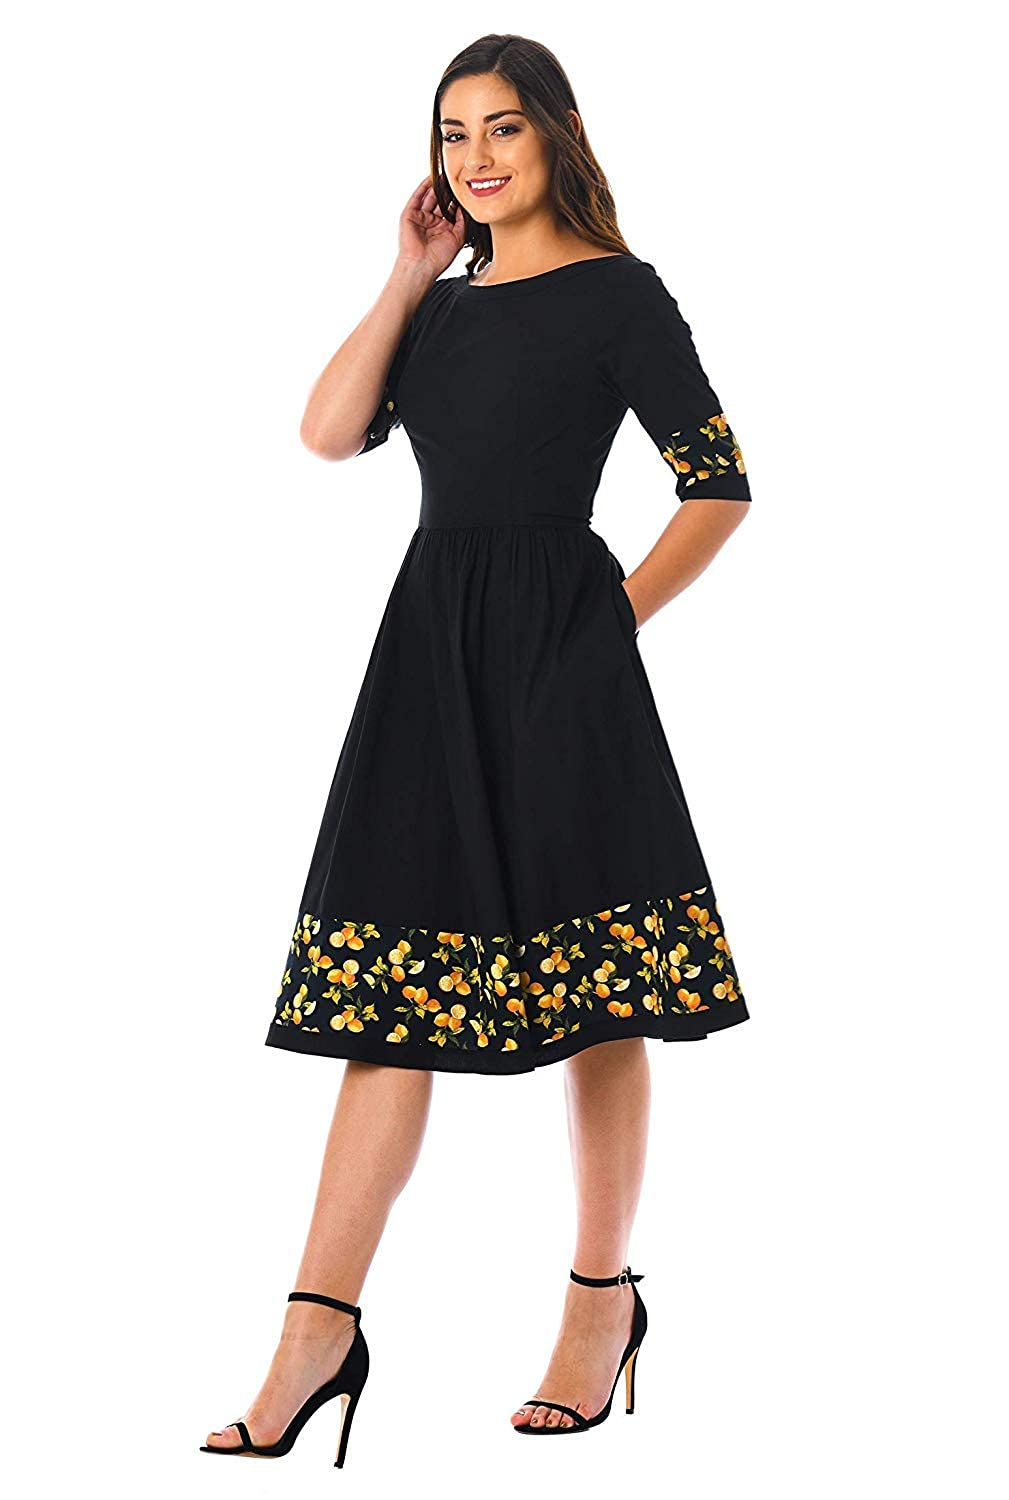 cfc4c404bb Madhav fashion Casual solid fit and flare knee length dress for women  skater dress printed one piece short  Amazon.in  Clothing   Accessories